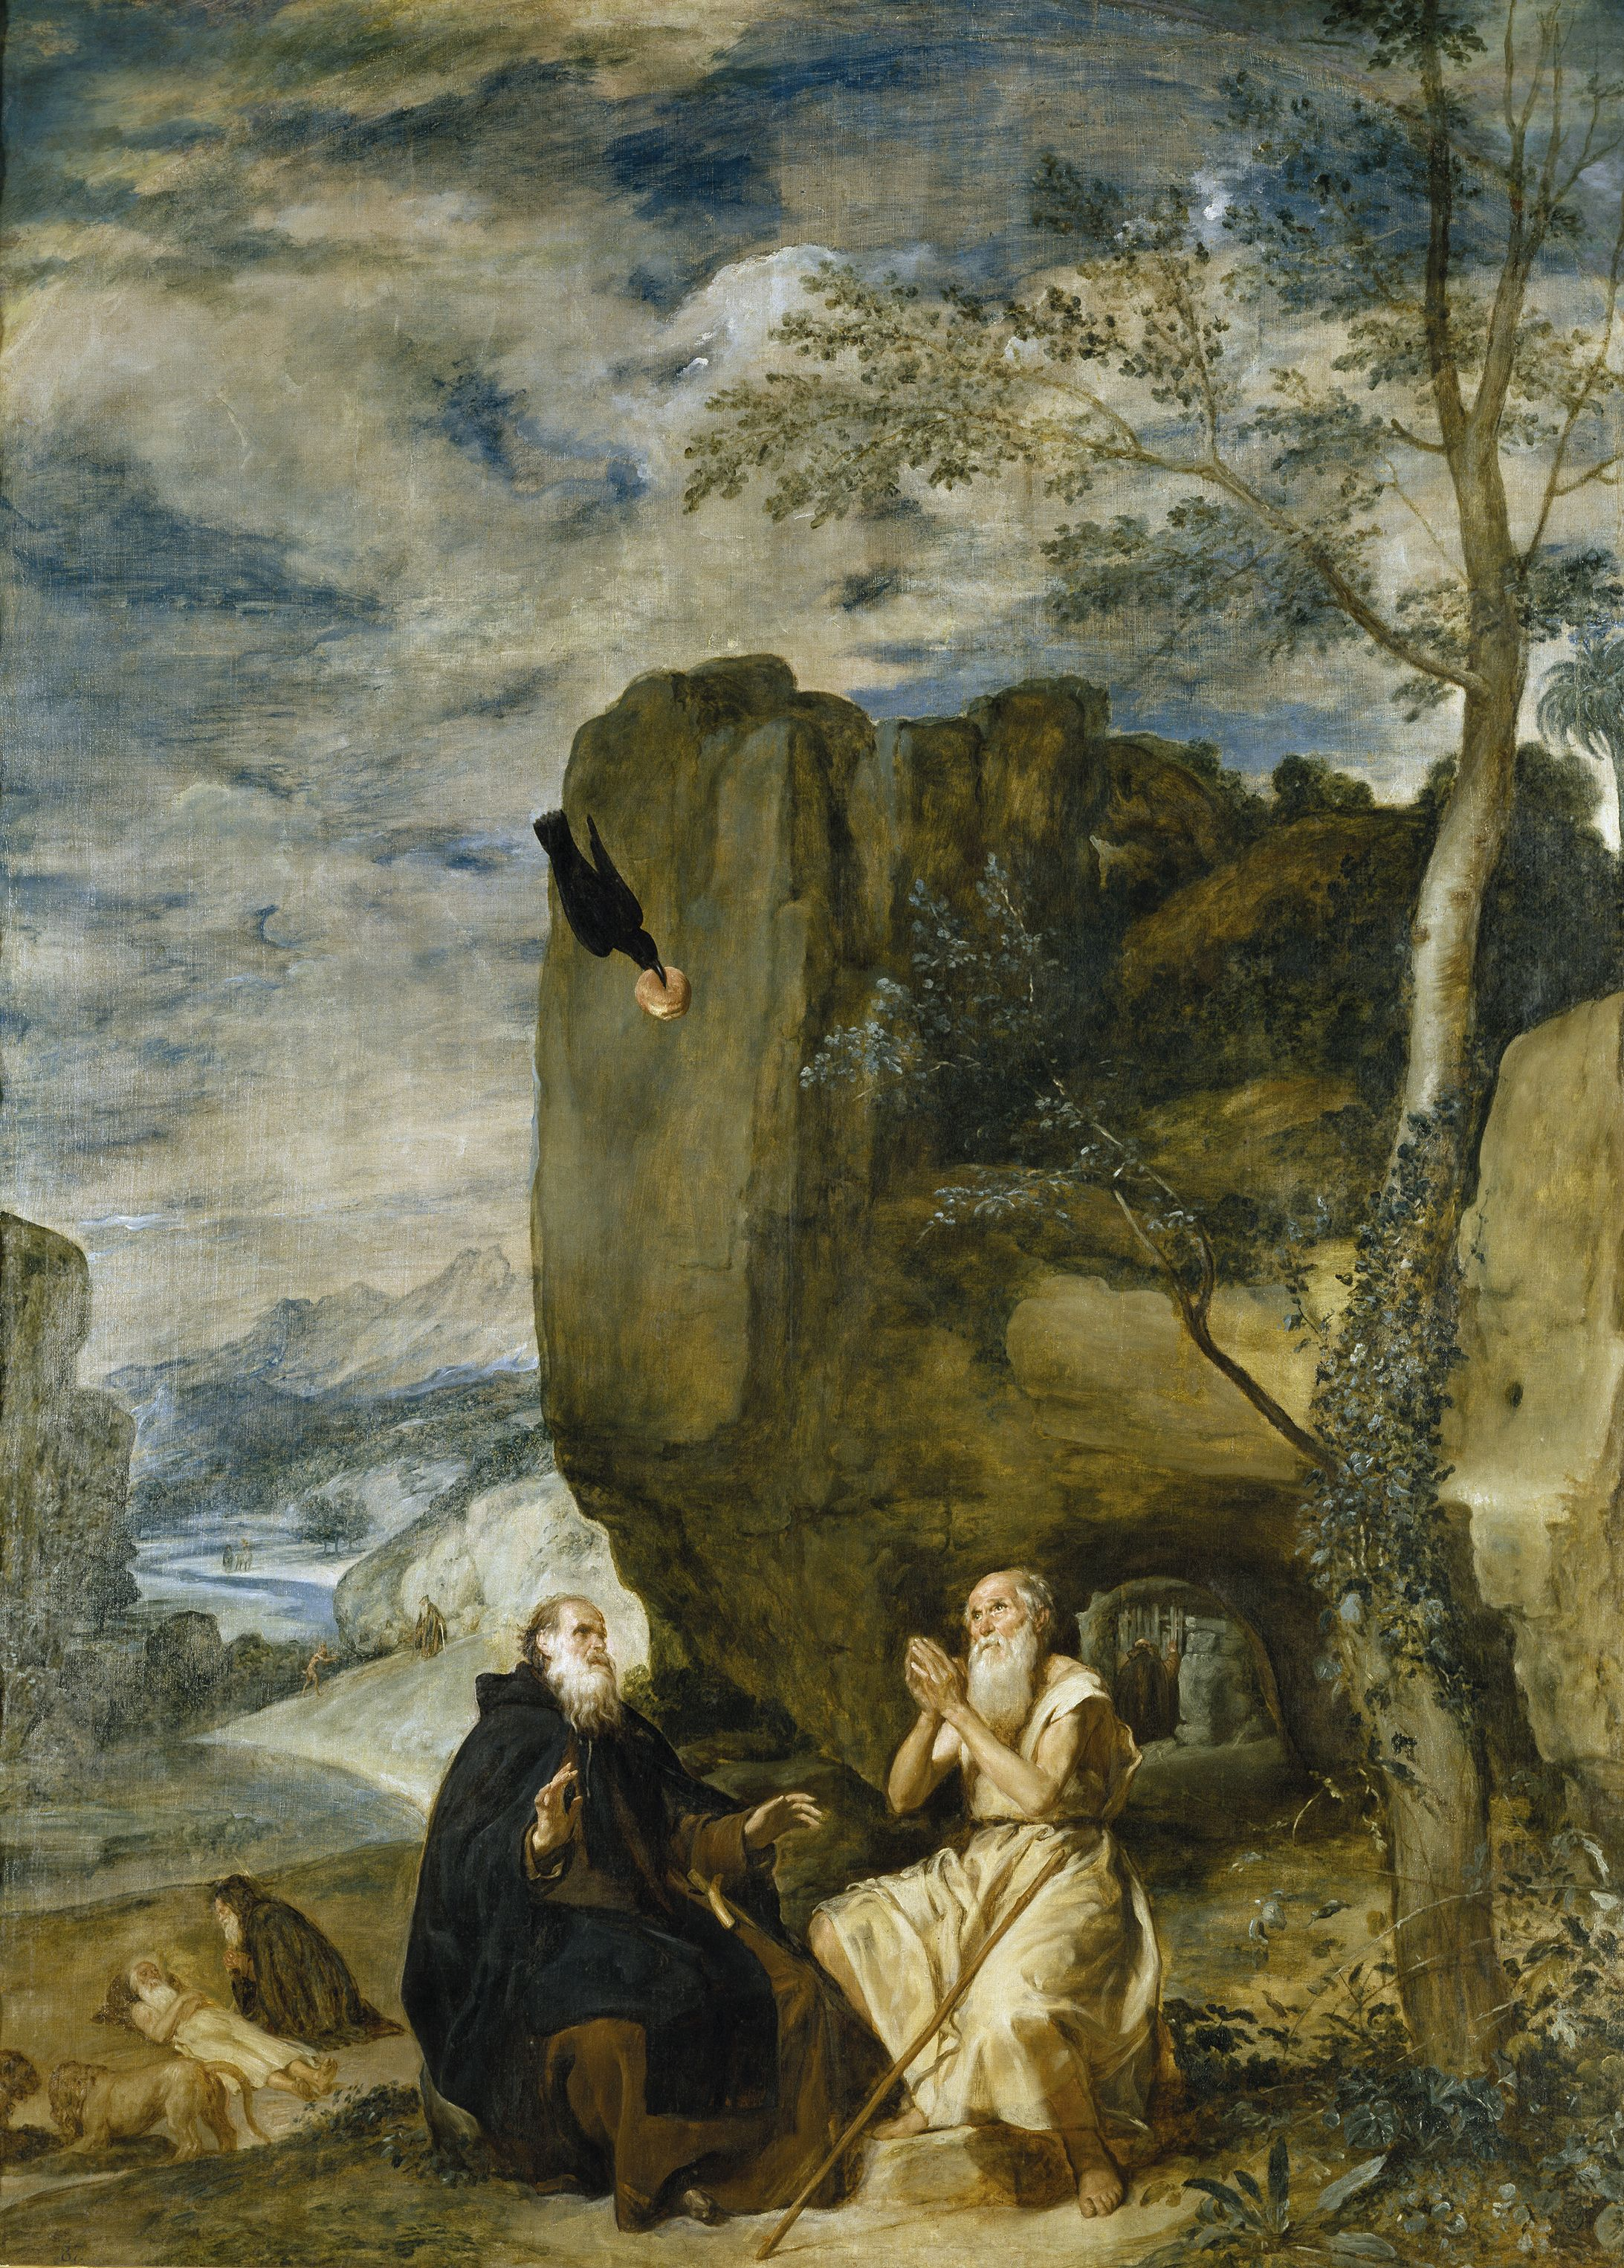 http://www.museodelprado.es/en/the-collection/online-gallery/on-line-gallery/obra/saint-anthony-the-abbot-and-saint-paul-the-first-hermit/